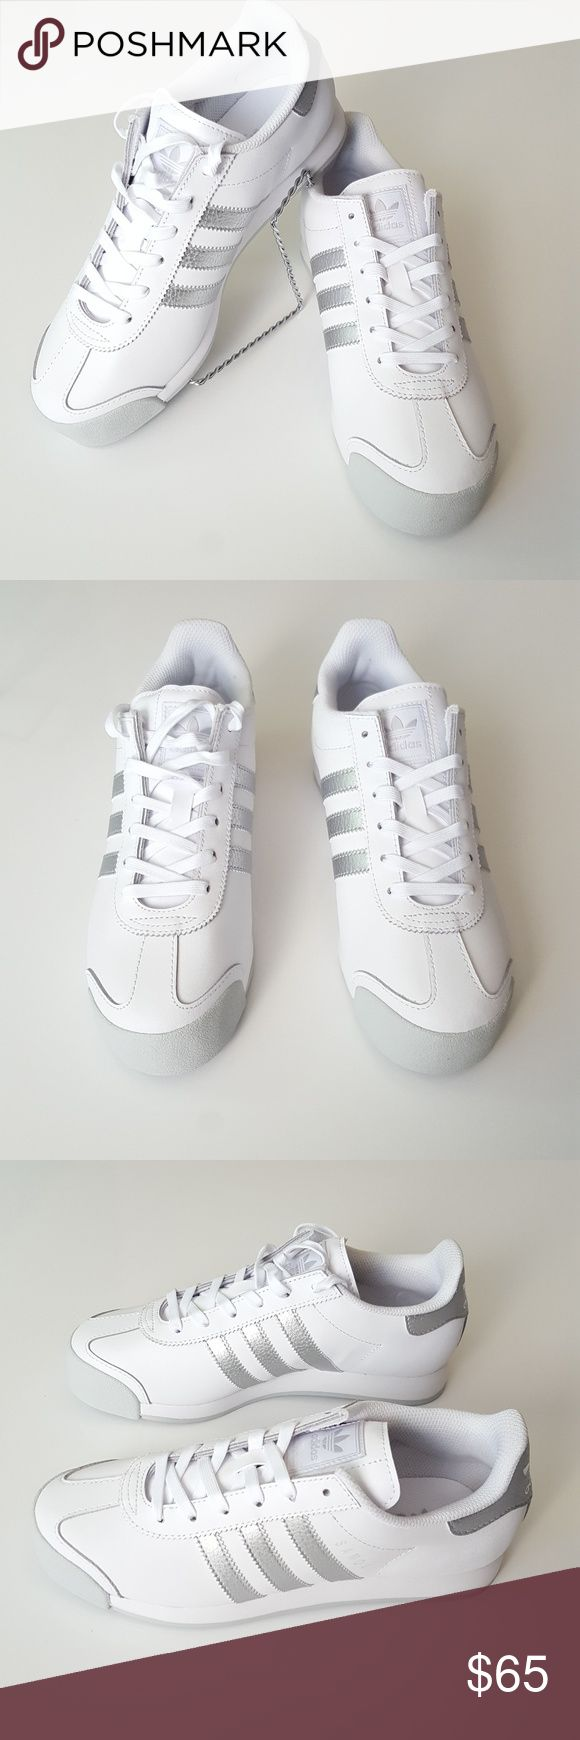 ♀ NEW ADIDAS WOMEN'S White & Silver Samoa Shoes ✔ Select your shoe size below to purchase ✔ 100% authentic ✔ Brand new and includes box  FEATURES: Leather upper with silver leather overlays Padded collar provides support Reinforced toe with rubber toe bumper offers protection and durability EVA midsole provides lightweight shock absorbing comfort Rubber outsole delivers flexible traction  Check out my other Burberry, Zara, Nike, Under Armour, J Crew, Vince Camuto, TOPSHOP, Coach, Michael…